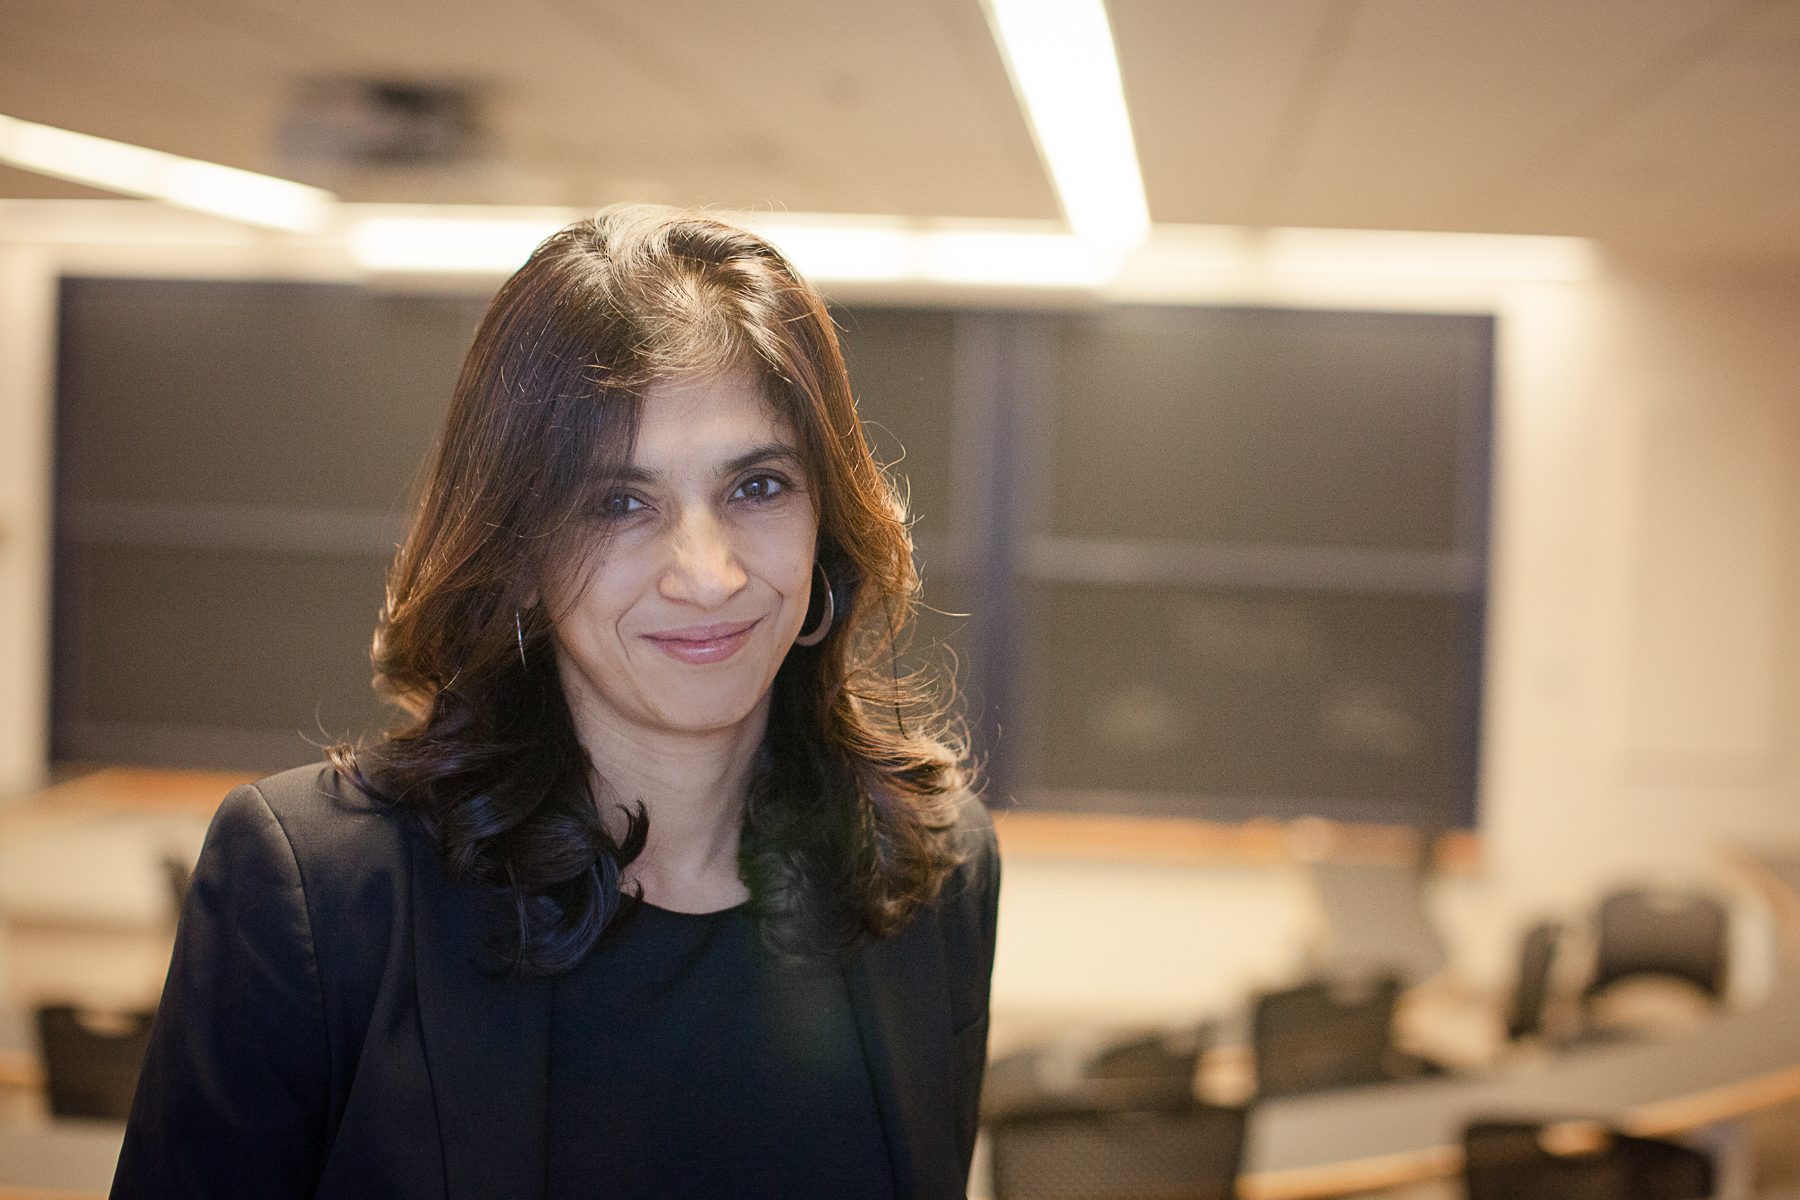 Rohini Pande, Recipient of the 2018 Carolyn Shaw Bell Award